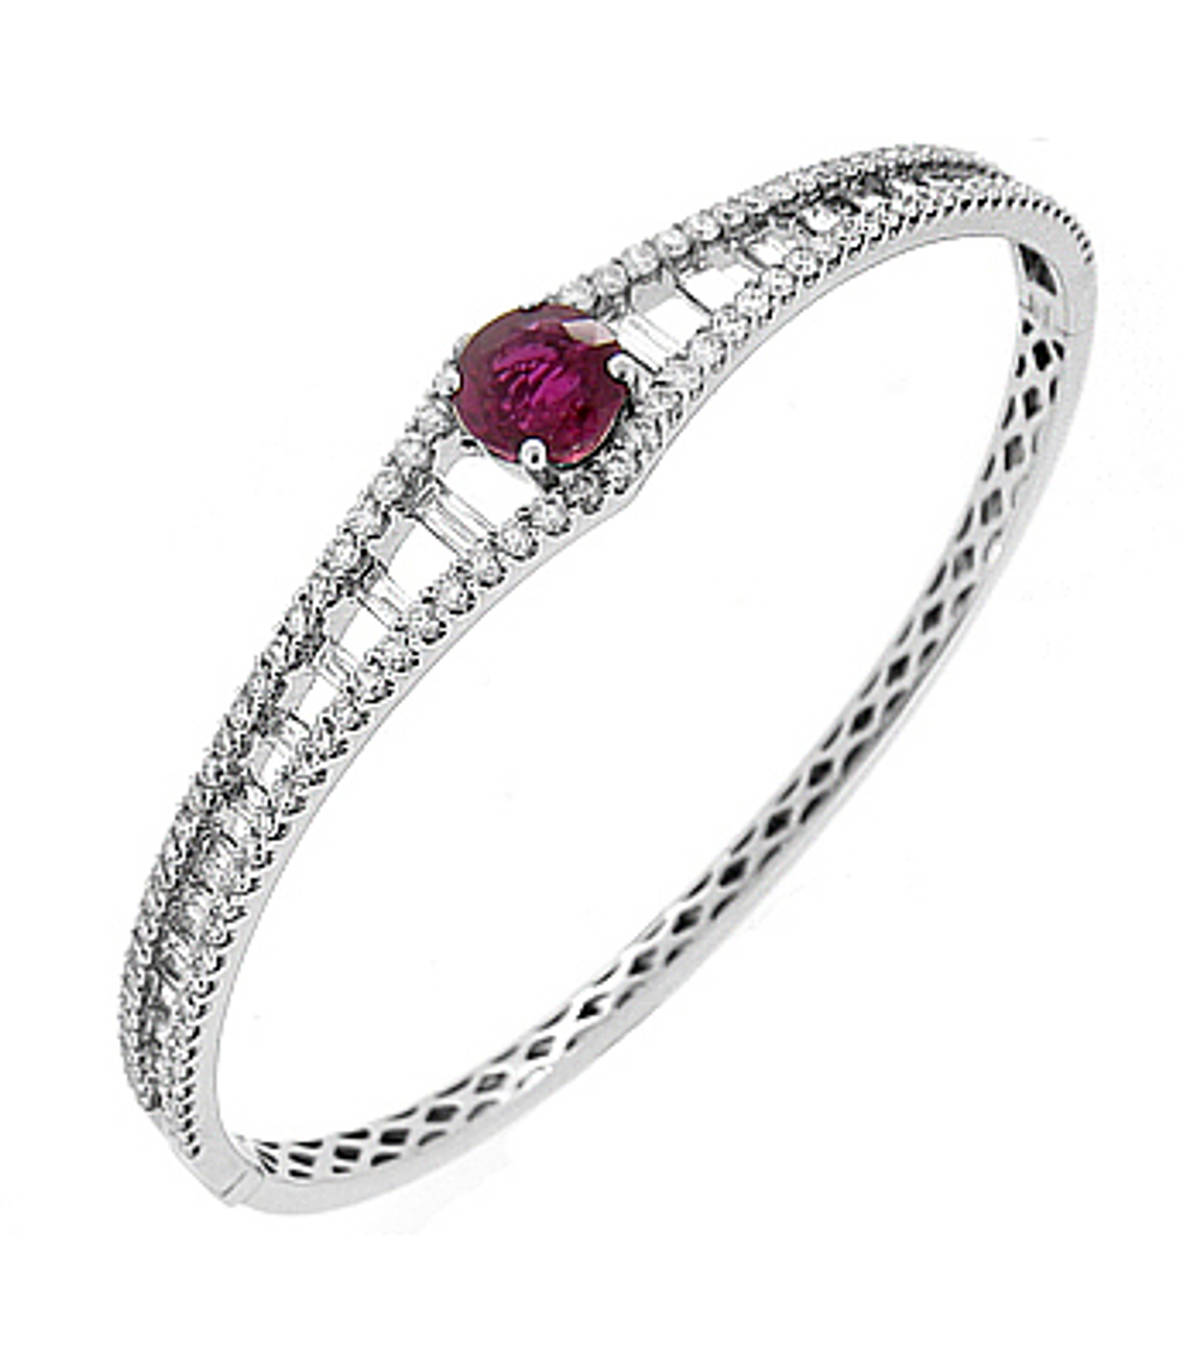 Ruby and diamond bangleAvailable in: 18k white gold, 18k yellow goldPictured item: Ruby 1.00cts/Diamonds 2.20cts set in 18k white gold